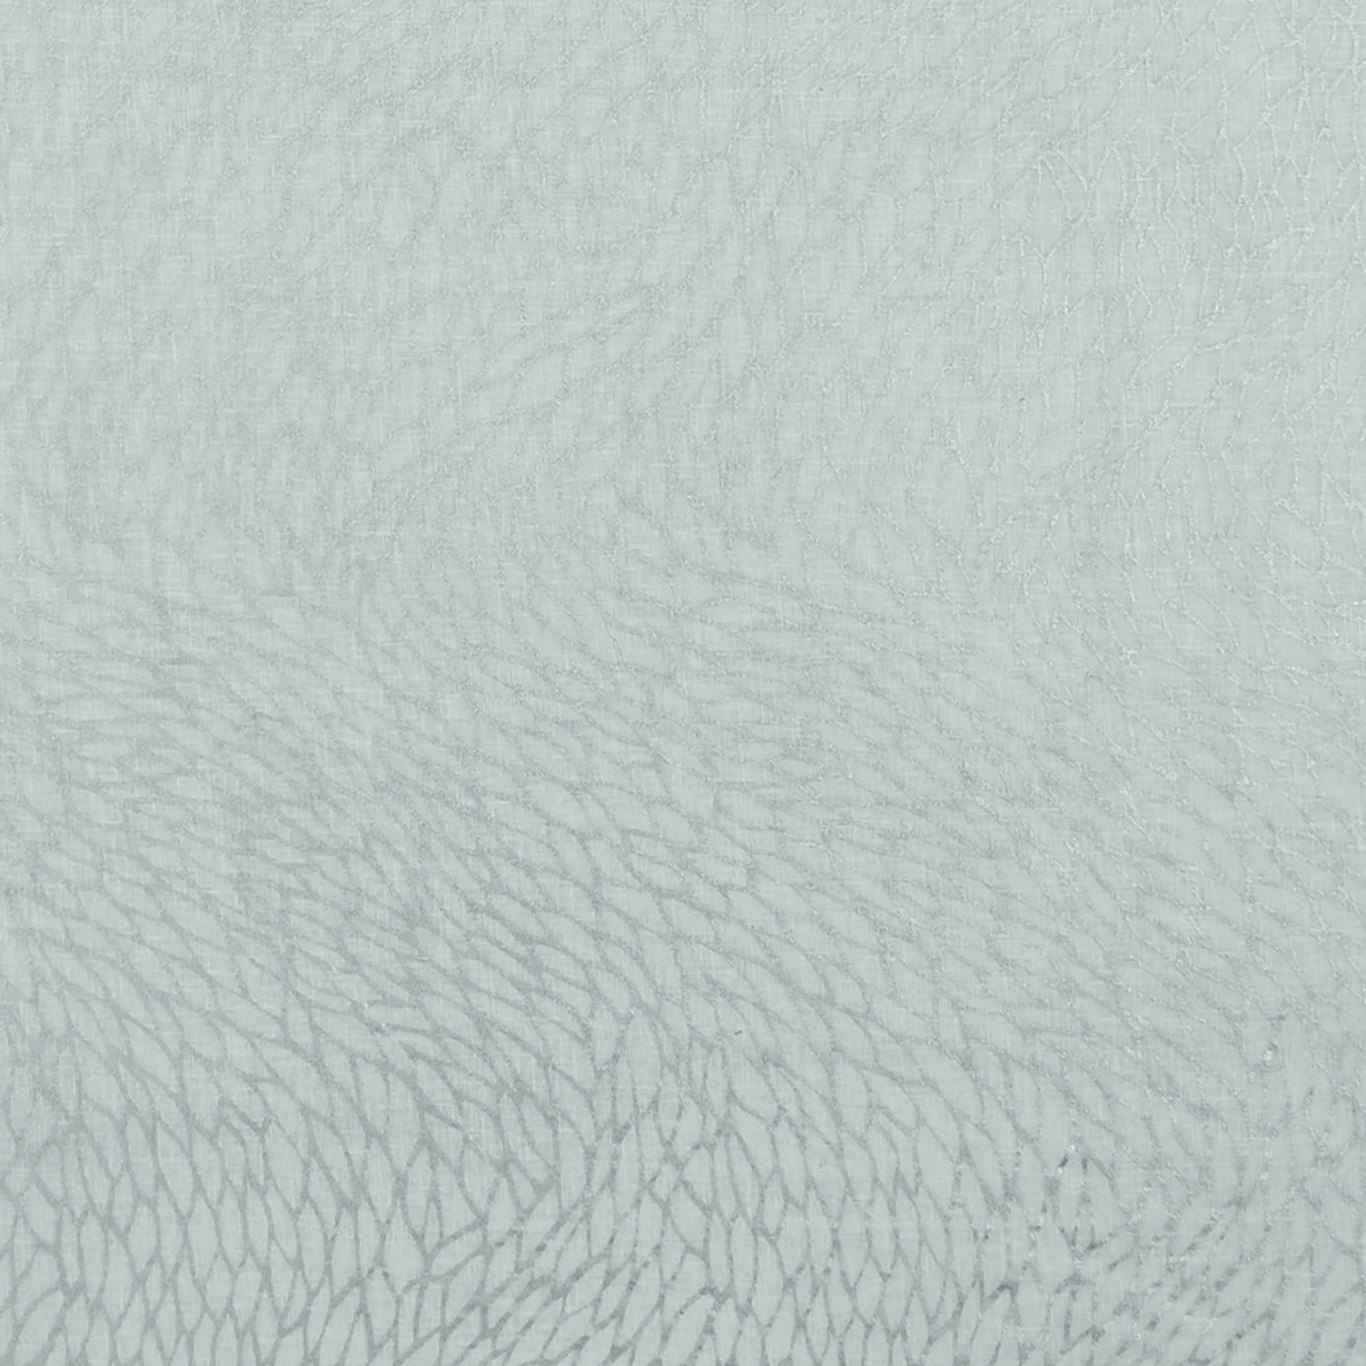 Corallino Sheer by CNC